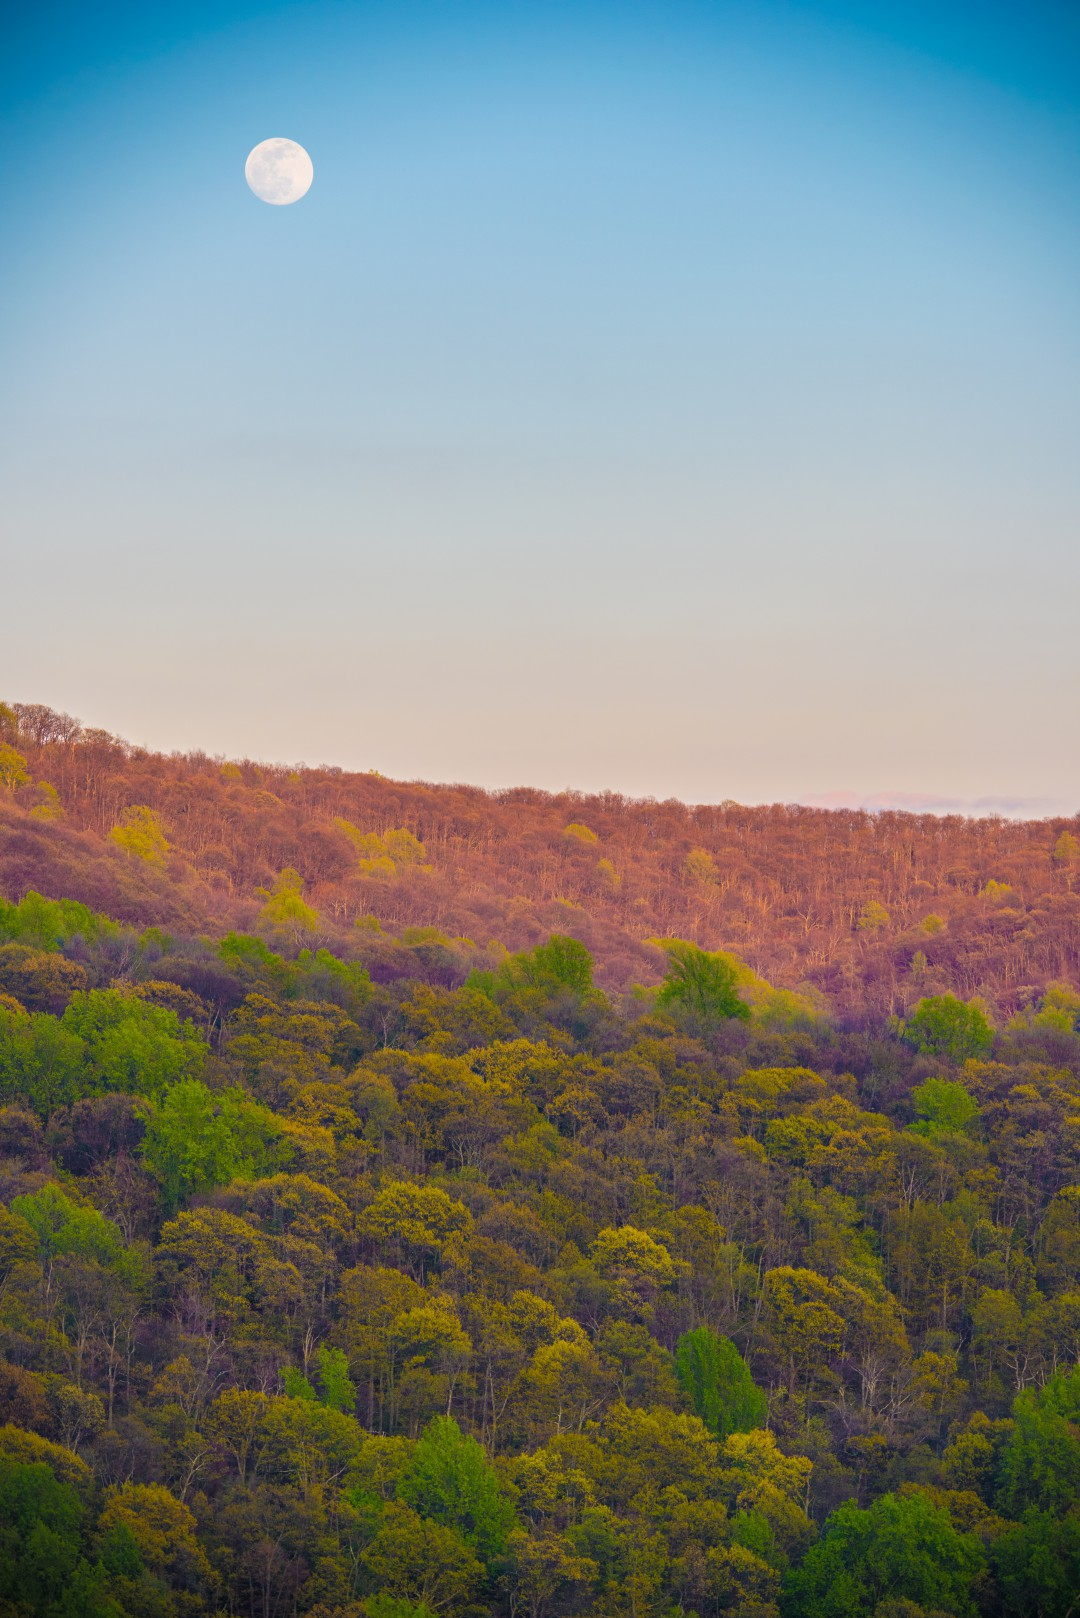 A full moon rises above the Shenandoahs cloaked in the colors of early spring